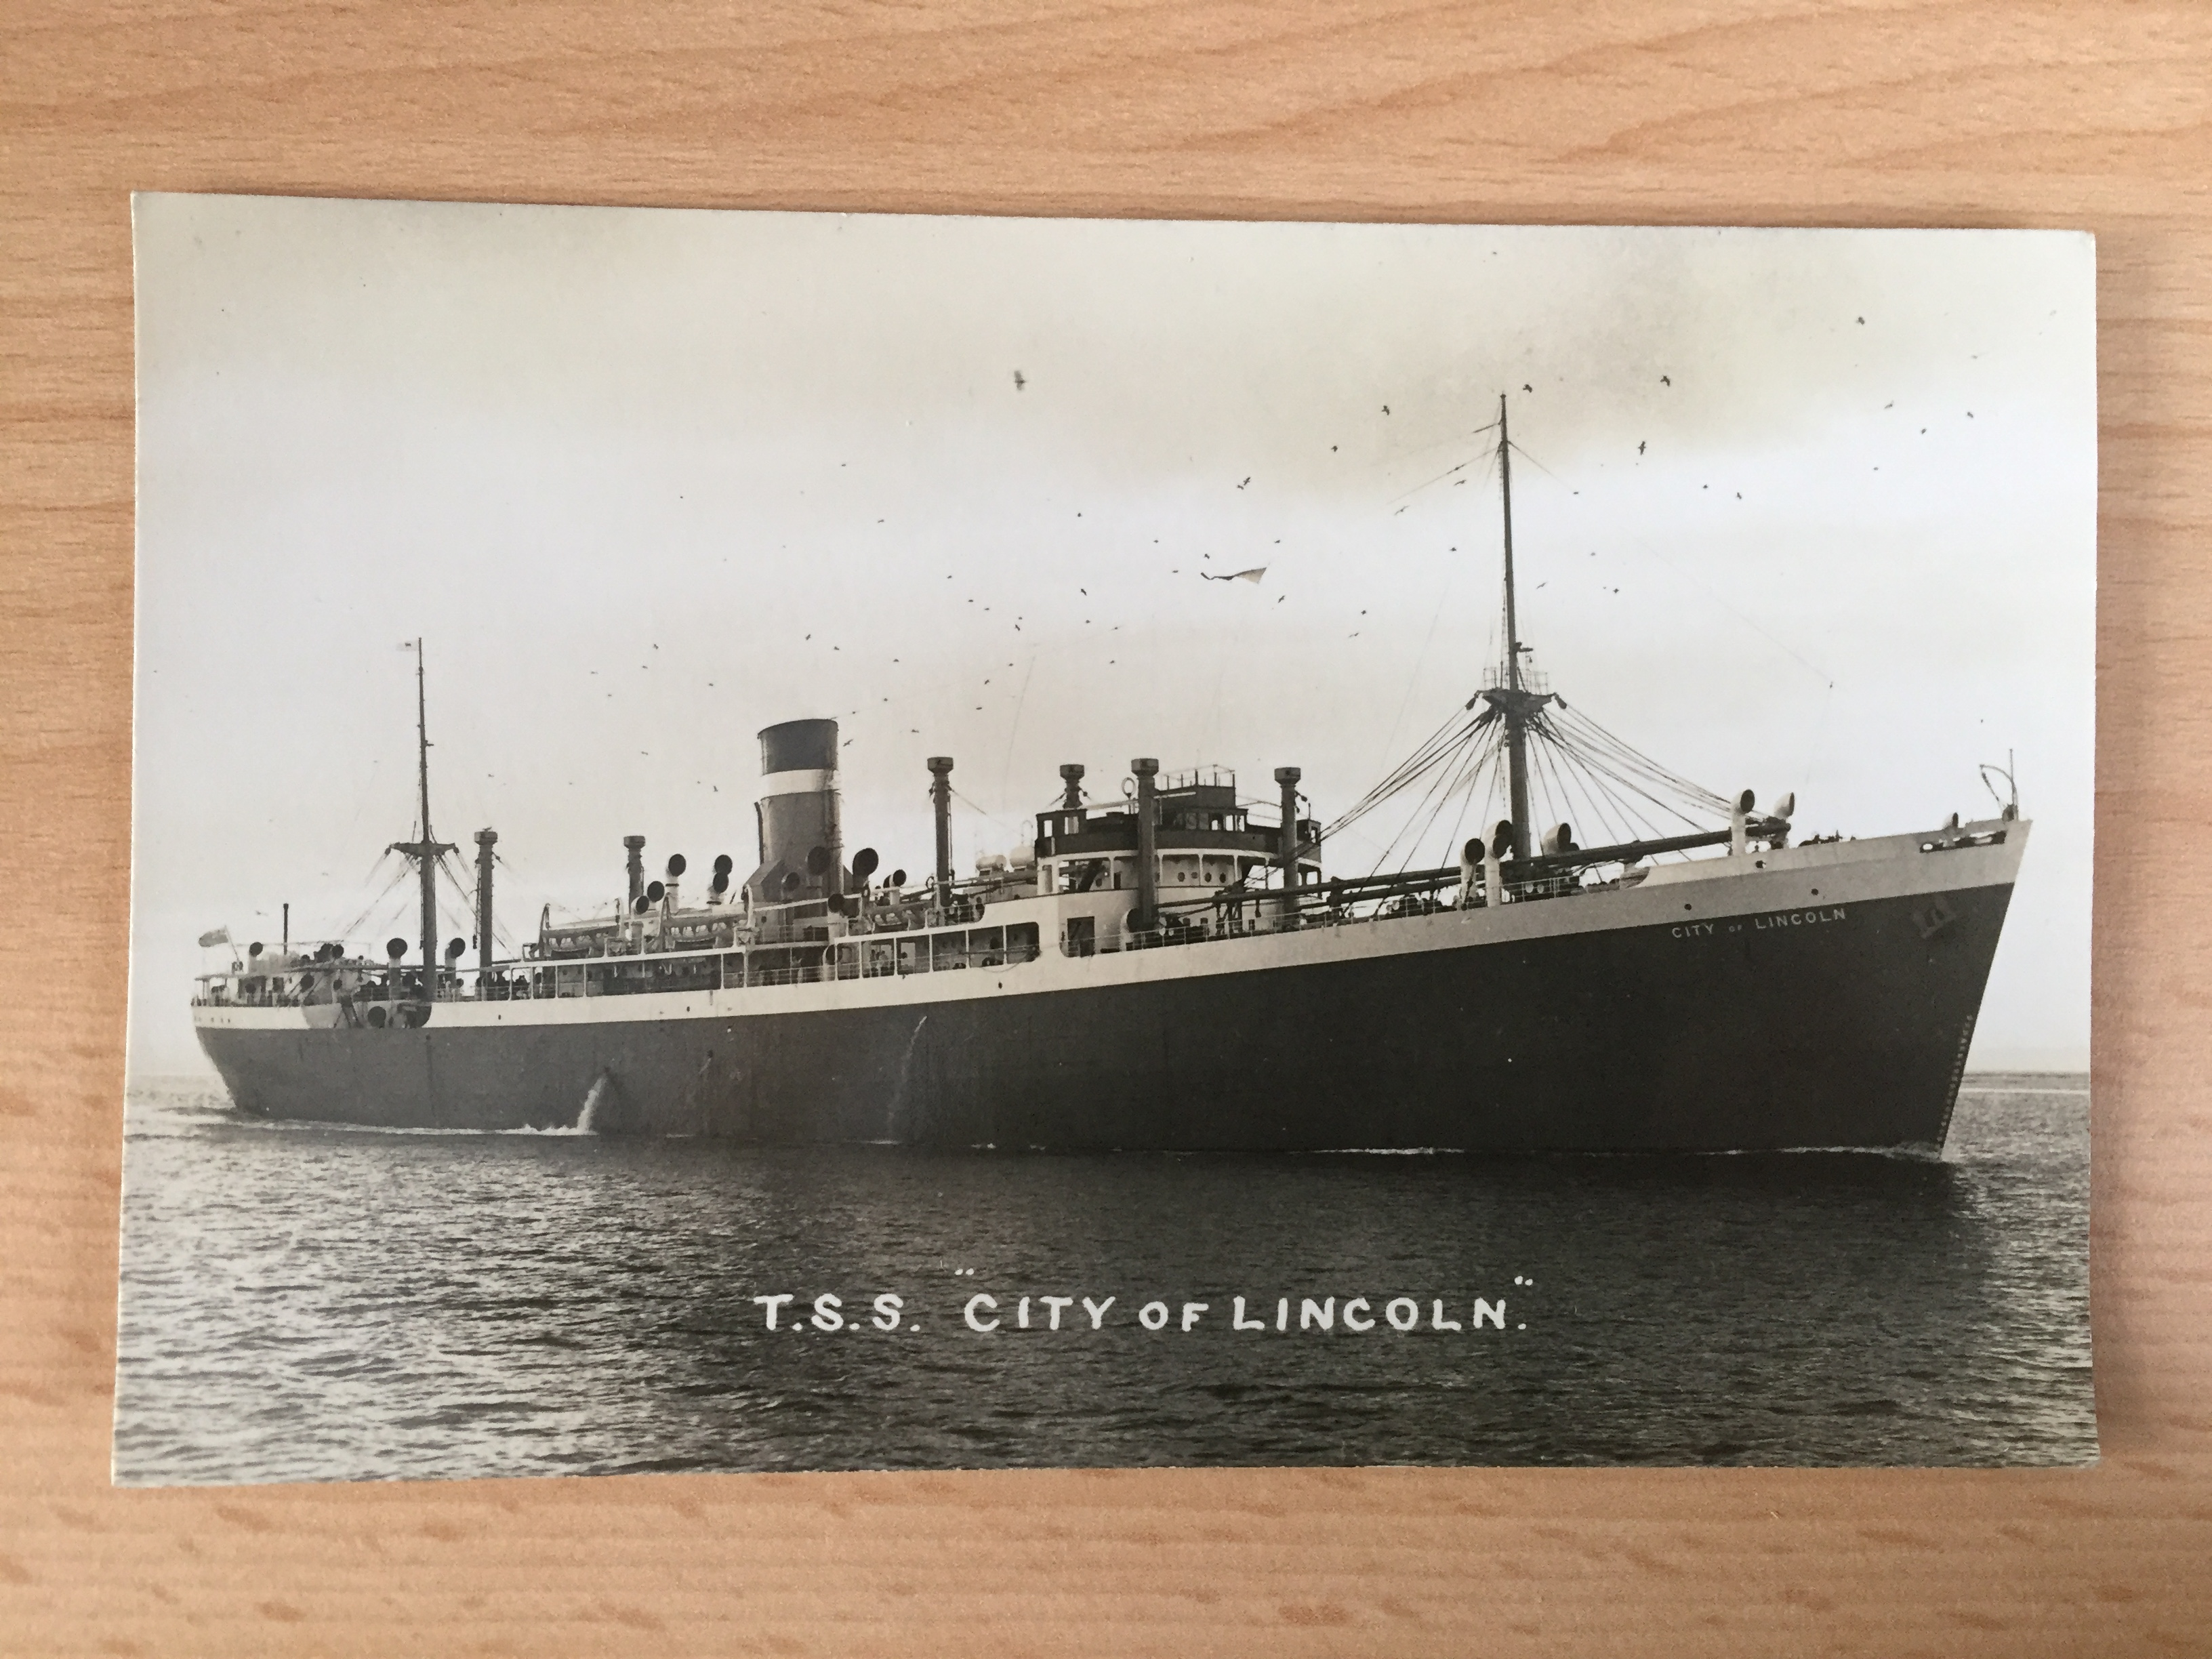 EARLY UNUSED B/W POSTCARD FROM THE VESSEL THE CITY OF LINCOLN FROM THE ELLERMAN LINES